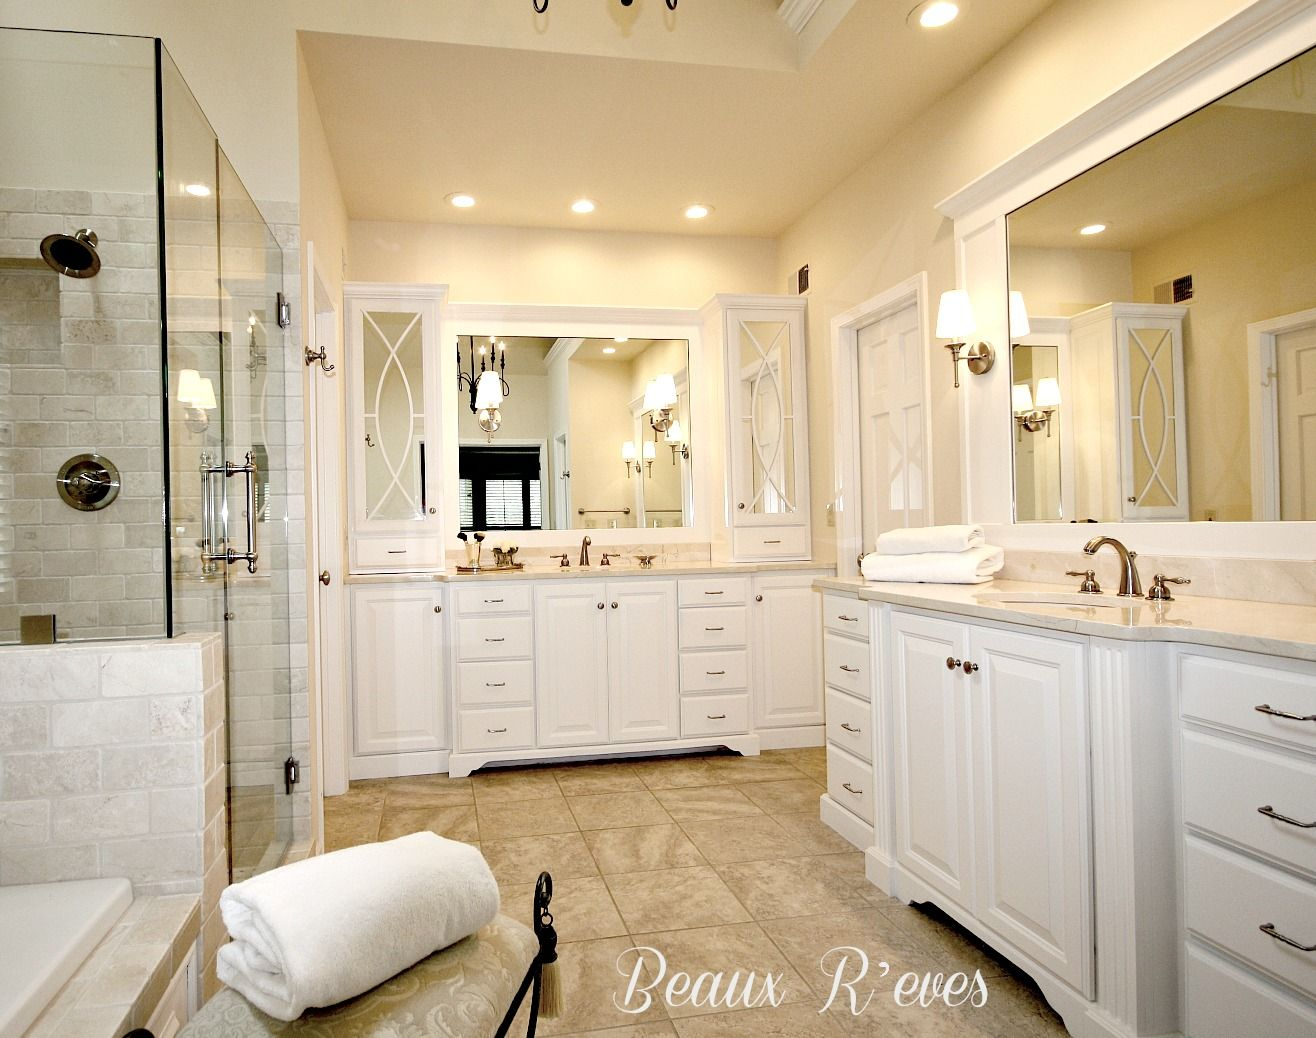 Paint colors: Walls~ Sherwin Williams Patience 7555 (flat ...